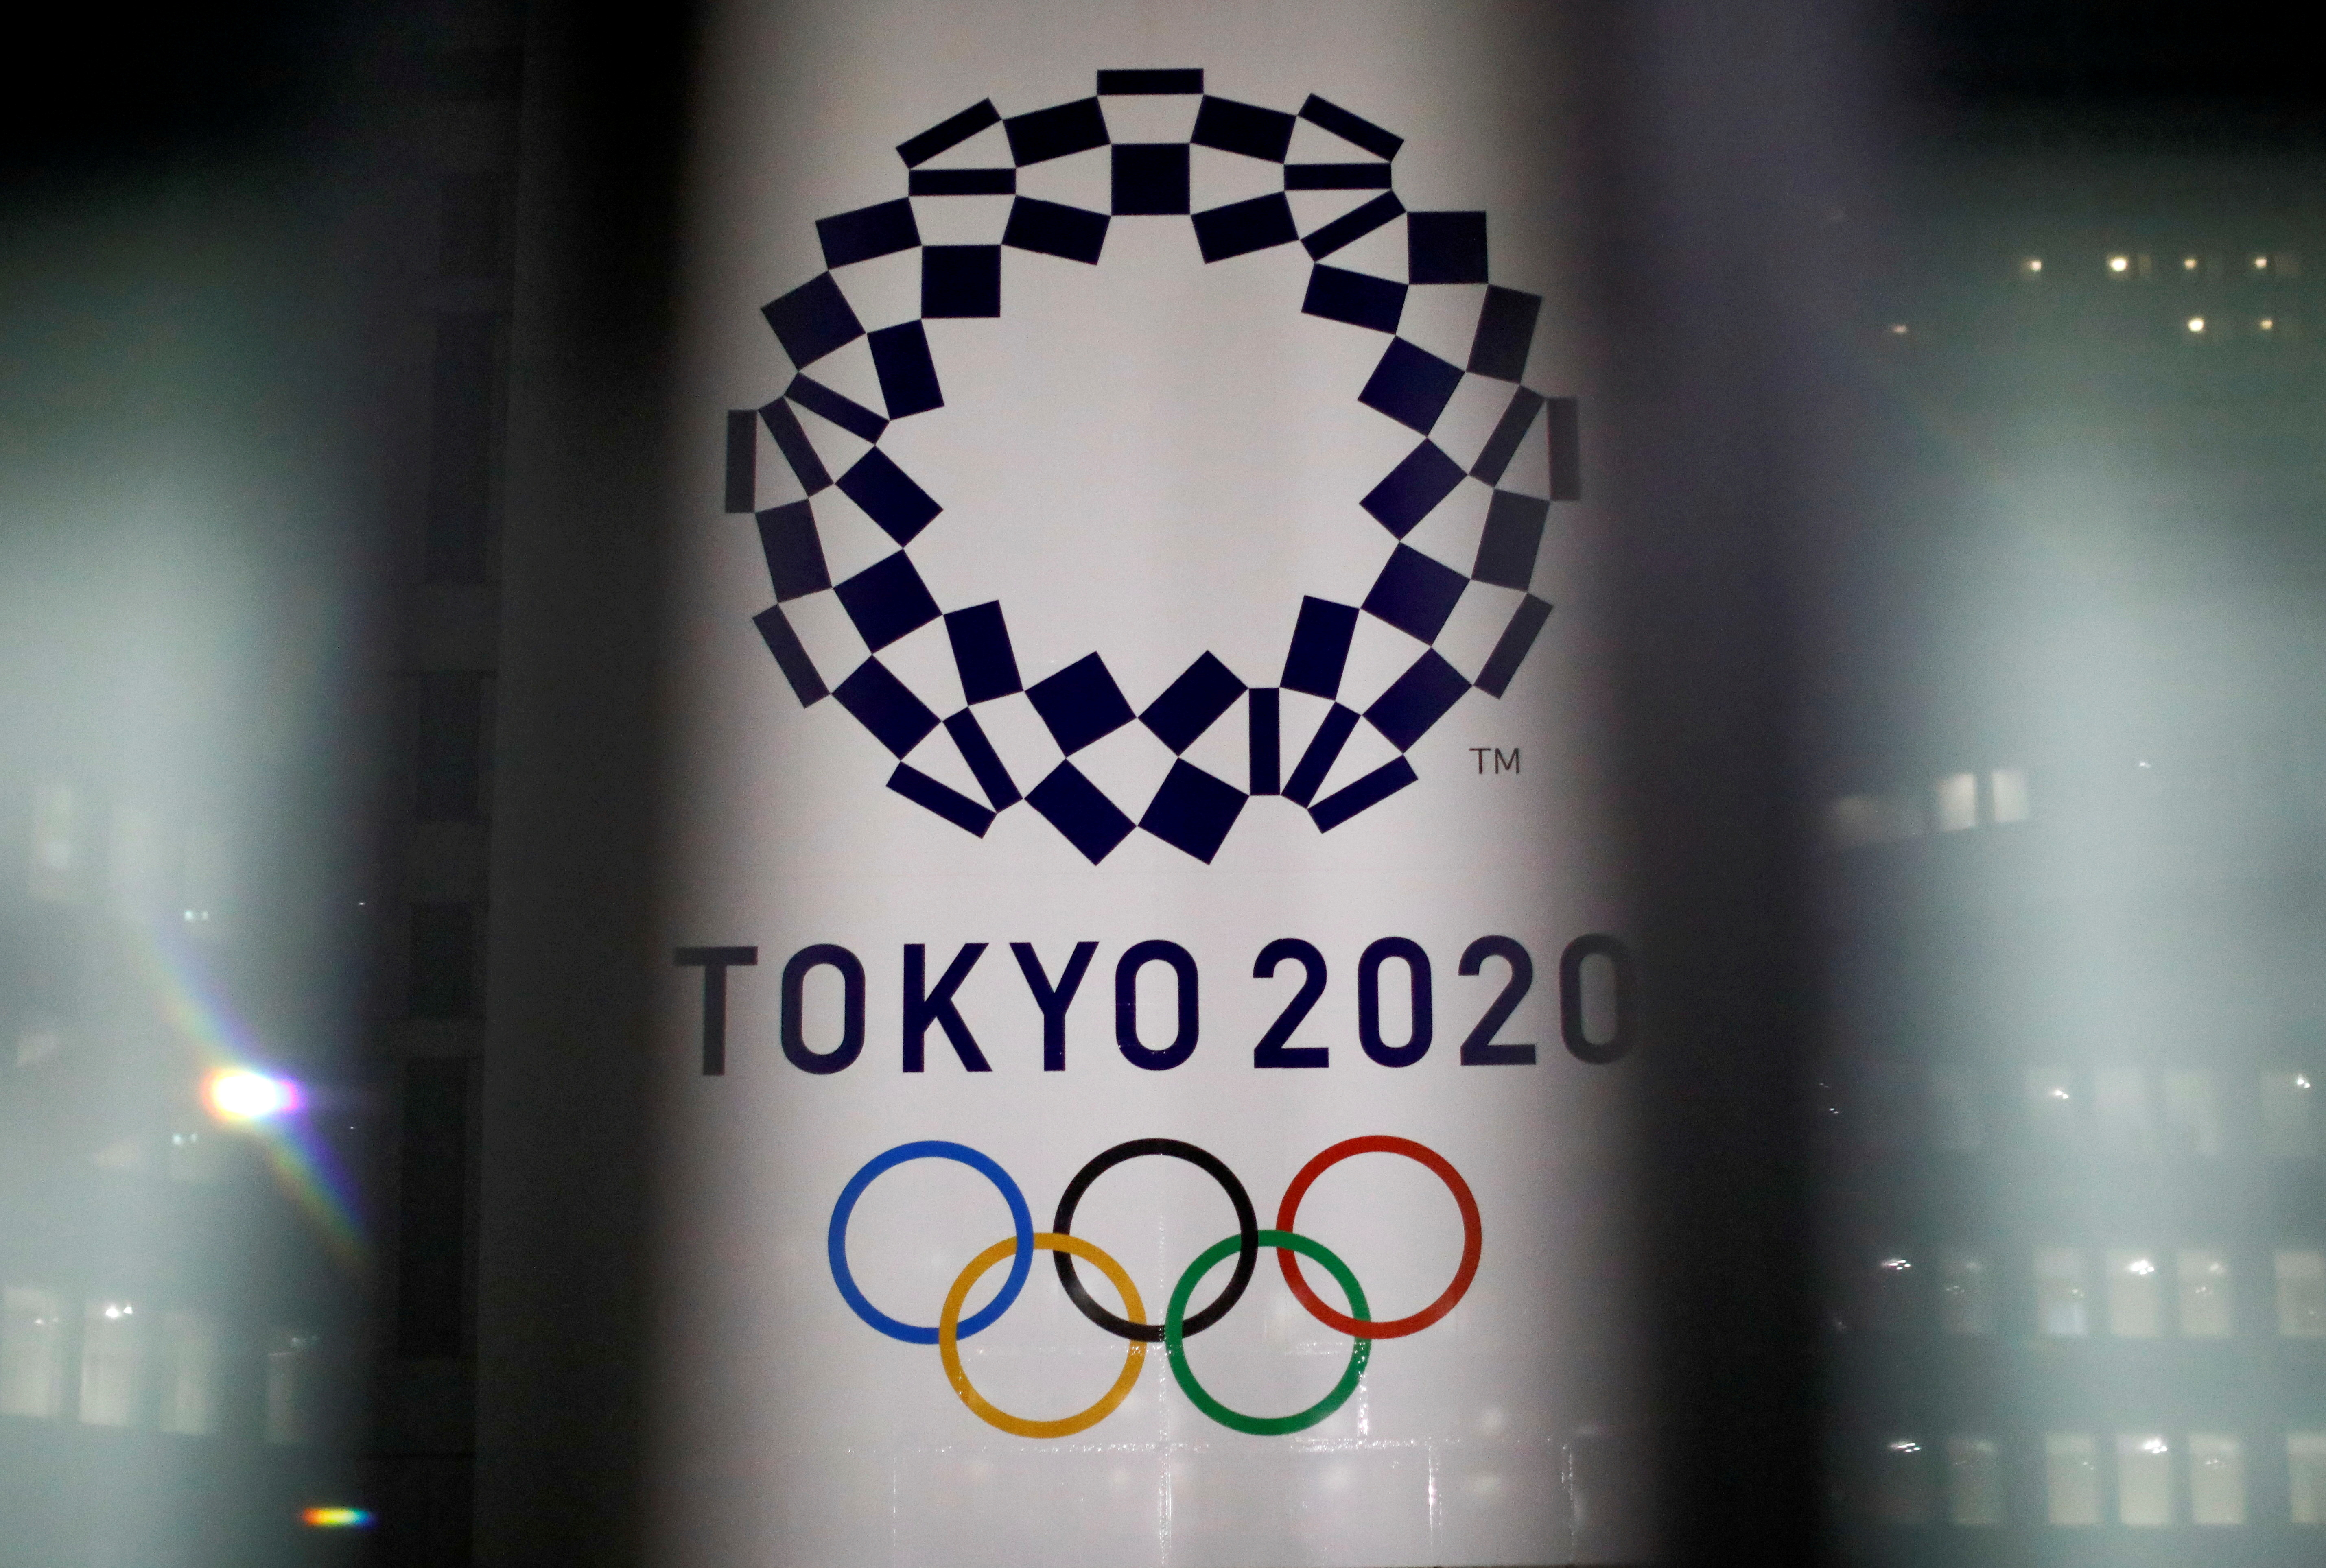 The logo of the Tokyo Olympic Games, at the Tokyo Metropolitan Government Office building in Tokyo, Japan, January 22, 2021. REUTERS/Issei Kato